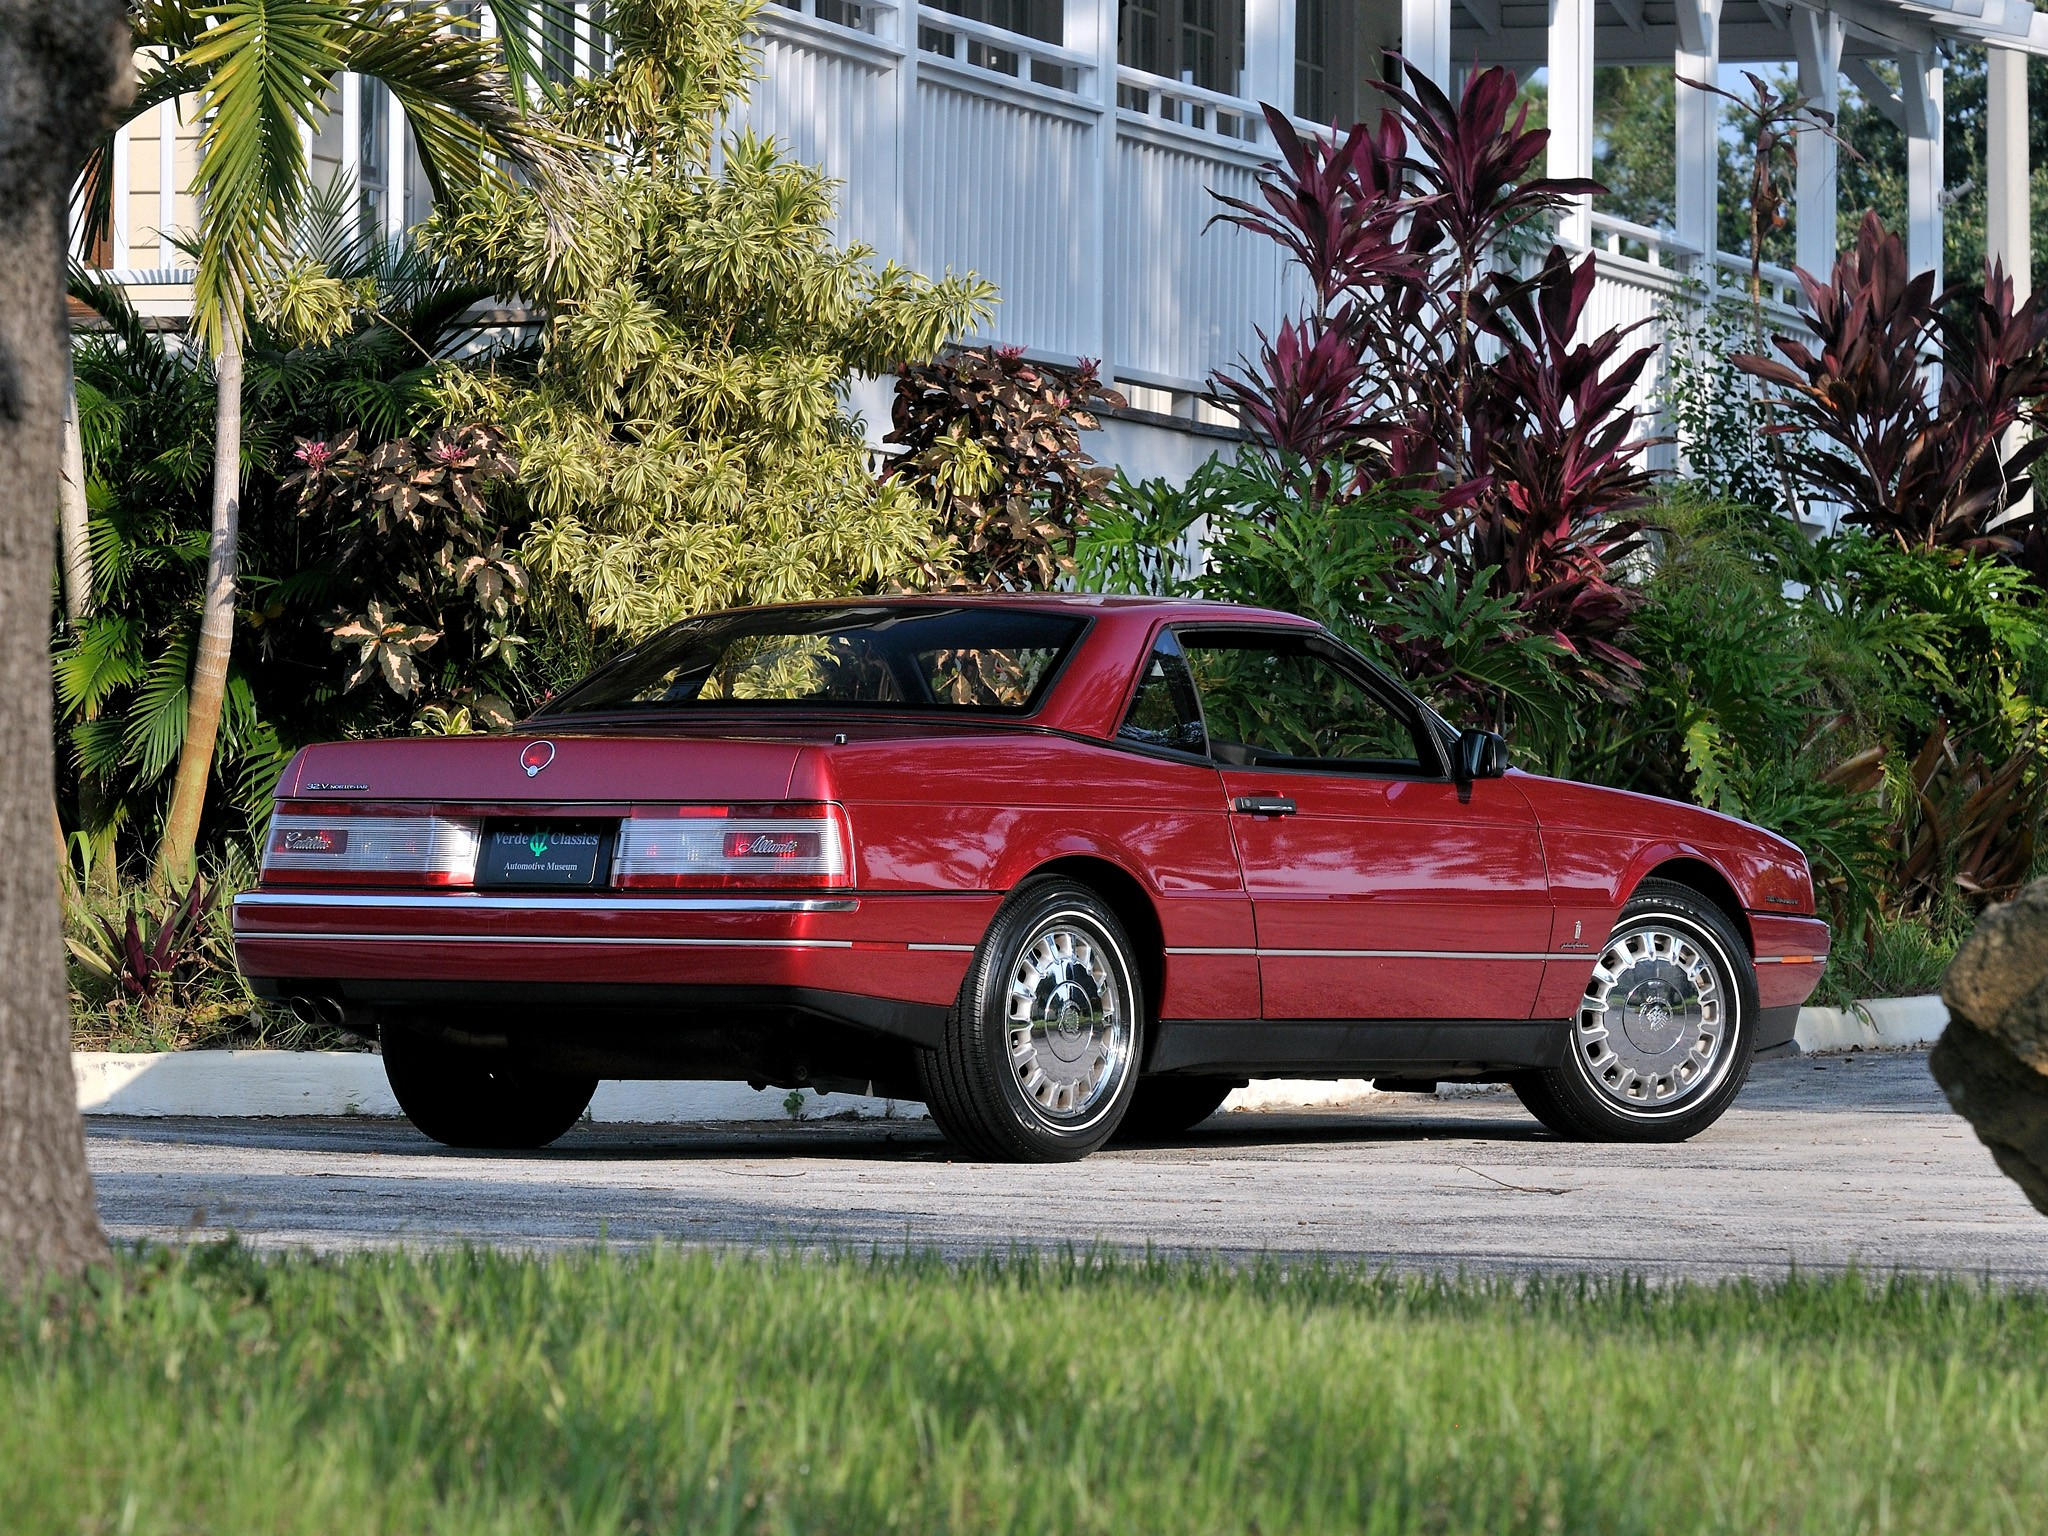 Needy 1974 Alfa Romeo Montreal Coupe moreover 1986 Ford Ranger together with Lada Nova  bi 1985 additionally Tyrr Stri Silv 1987 in addition S 1588 Plus Belle Voiture De L Annee 1987 2016. on 1987 alfa romeo